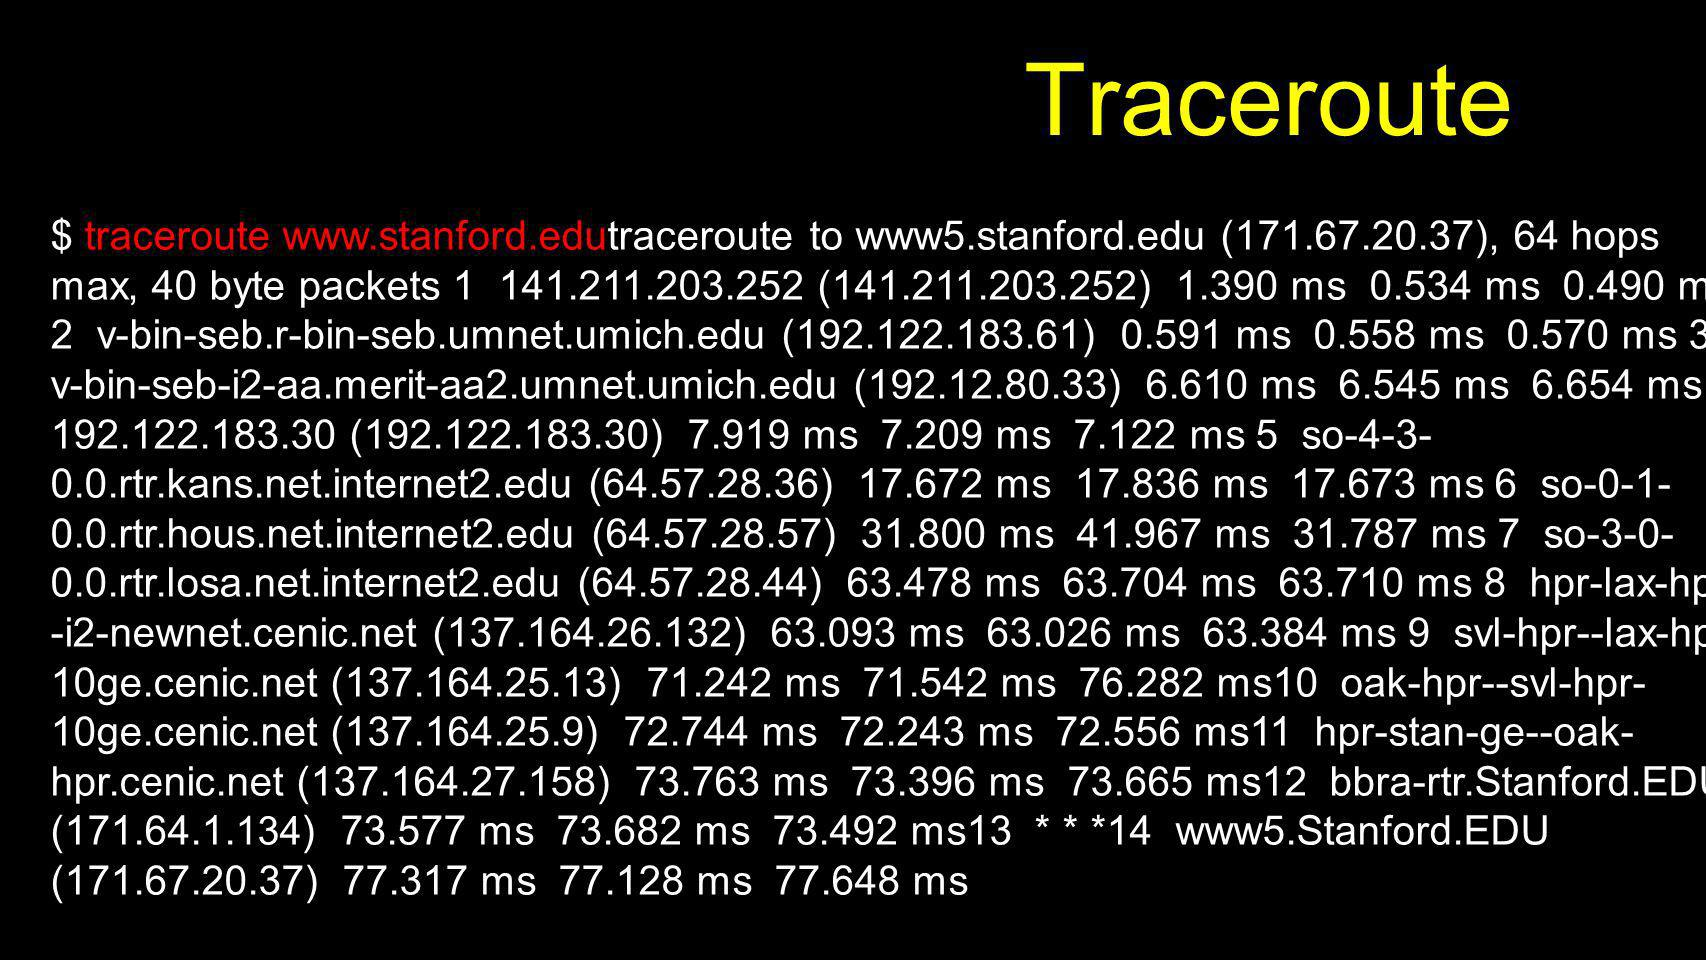 Traceroute $ traceroute www.stanford.edutraceroute to www5.stanford.edu (171.67.20.37), 64 hops max, 40 byte packets 1 141.211.203.252 (141.211.203.25